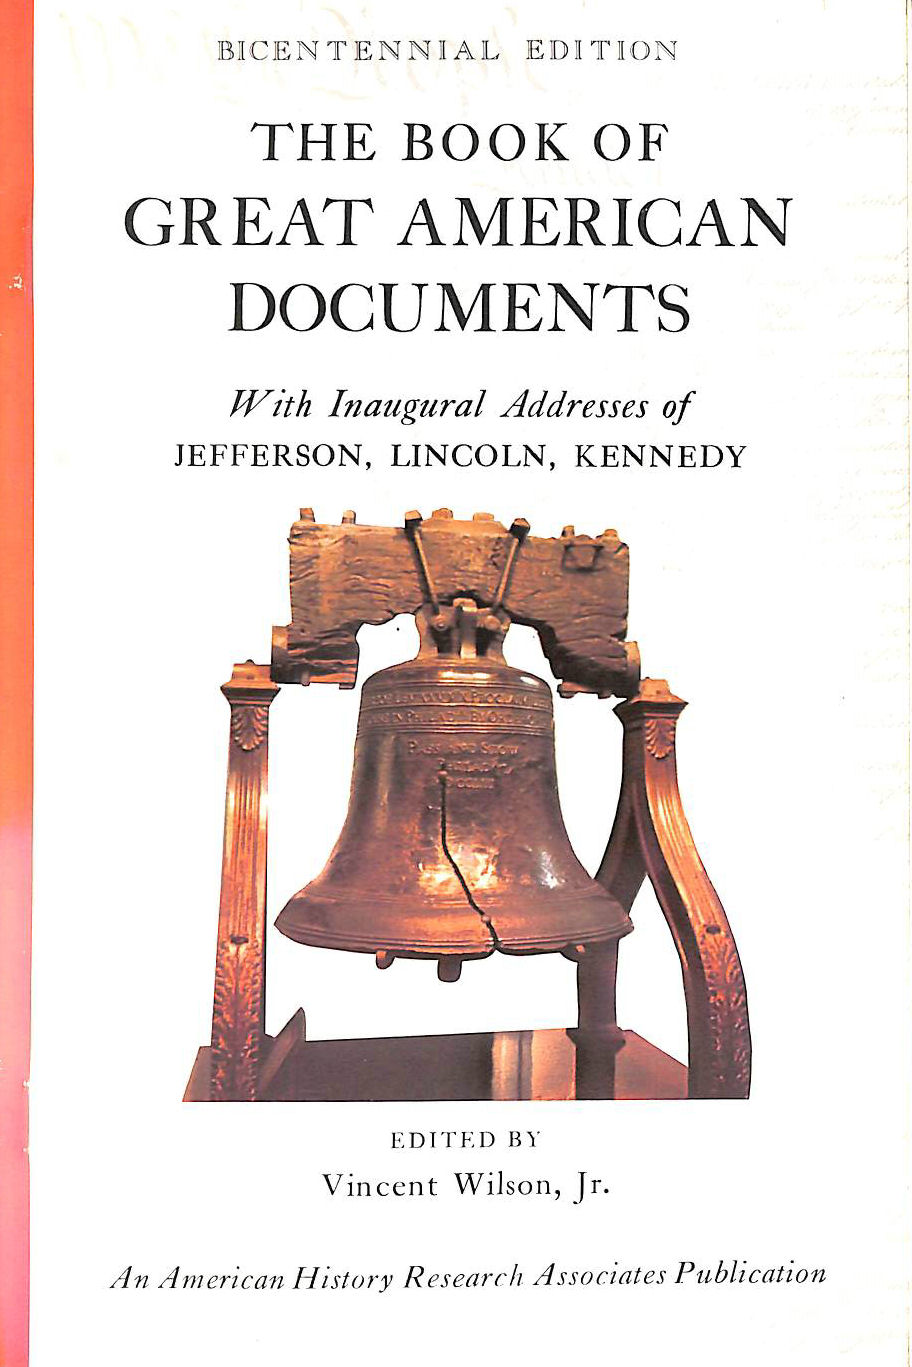 Image for The Book of Great American Documents